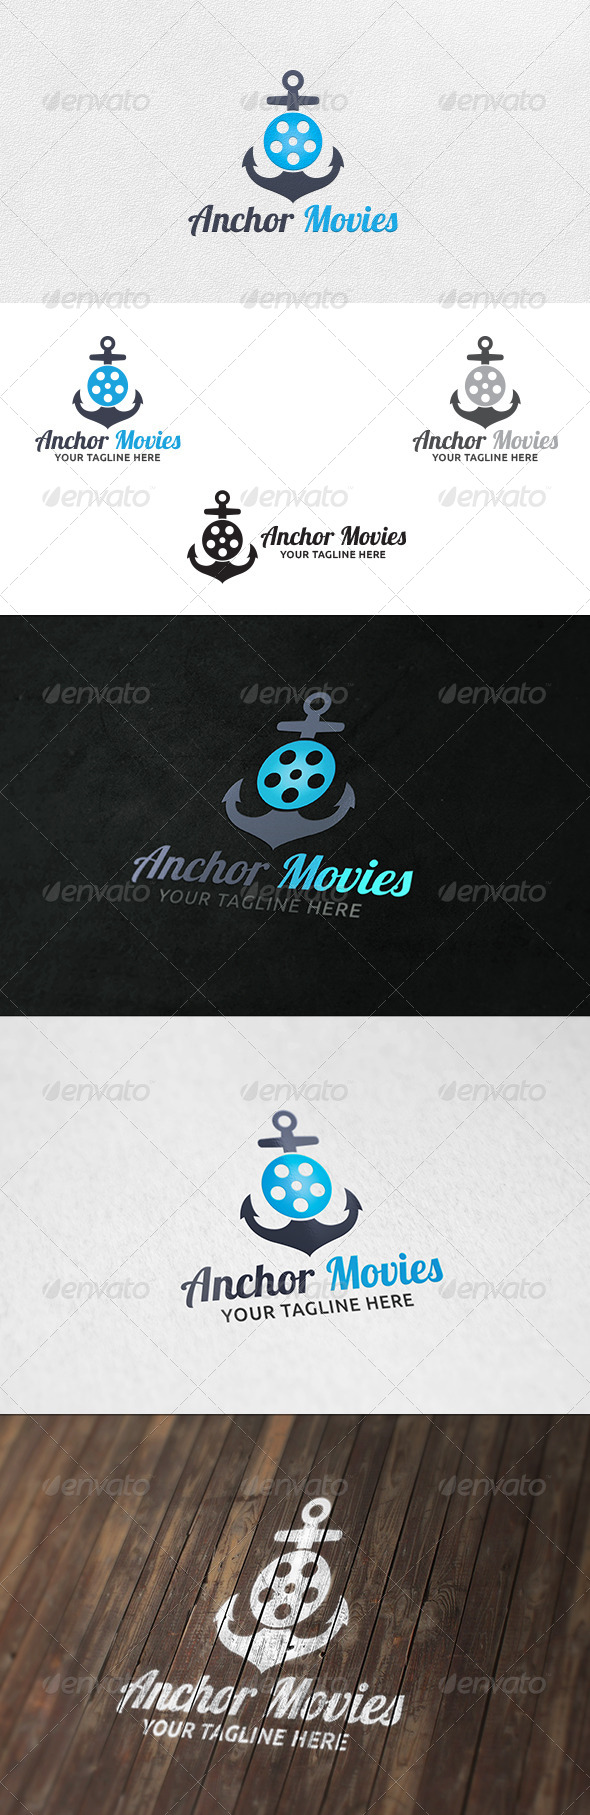 Anchor Movies - Logo Template - Symbols Logo Templates